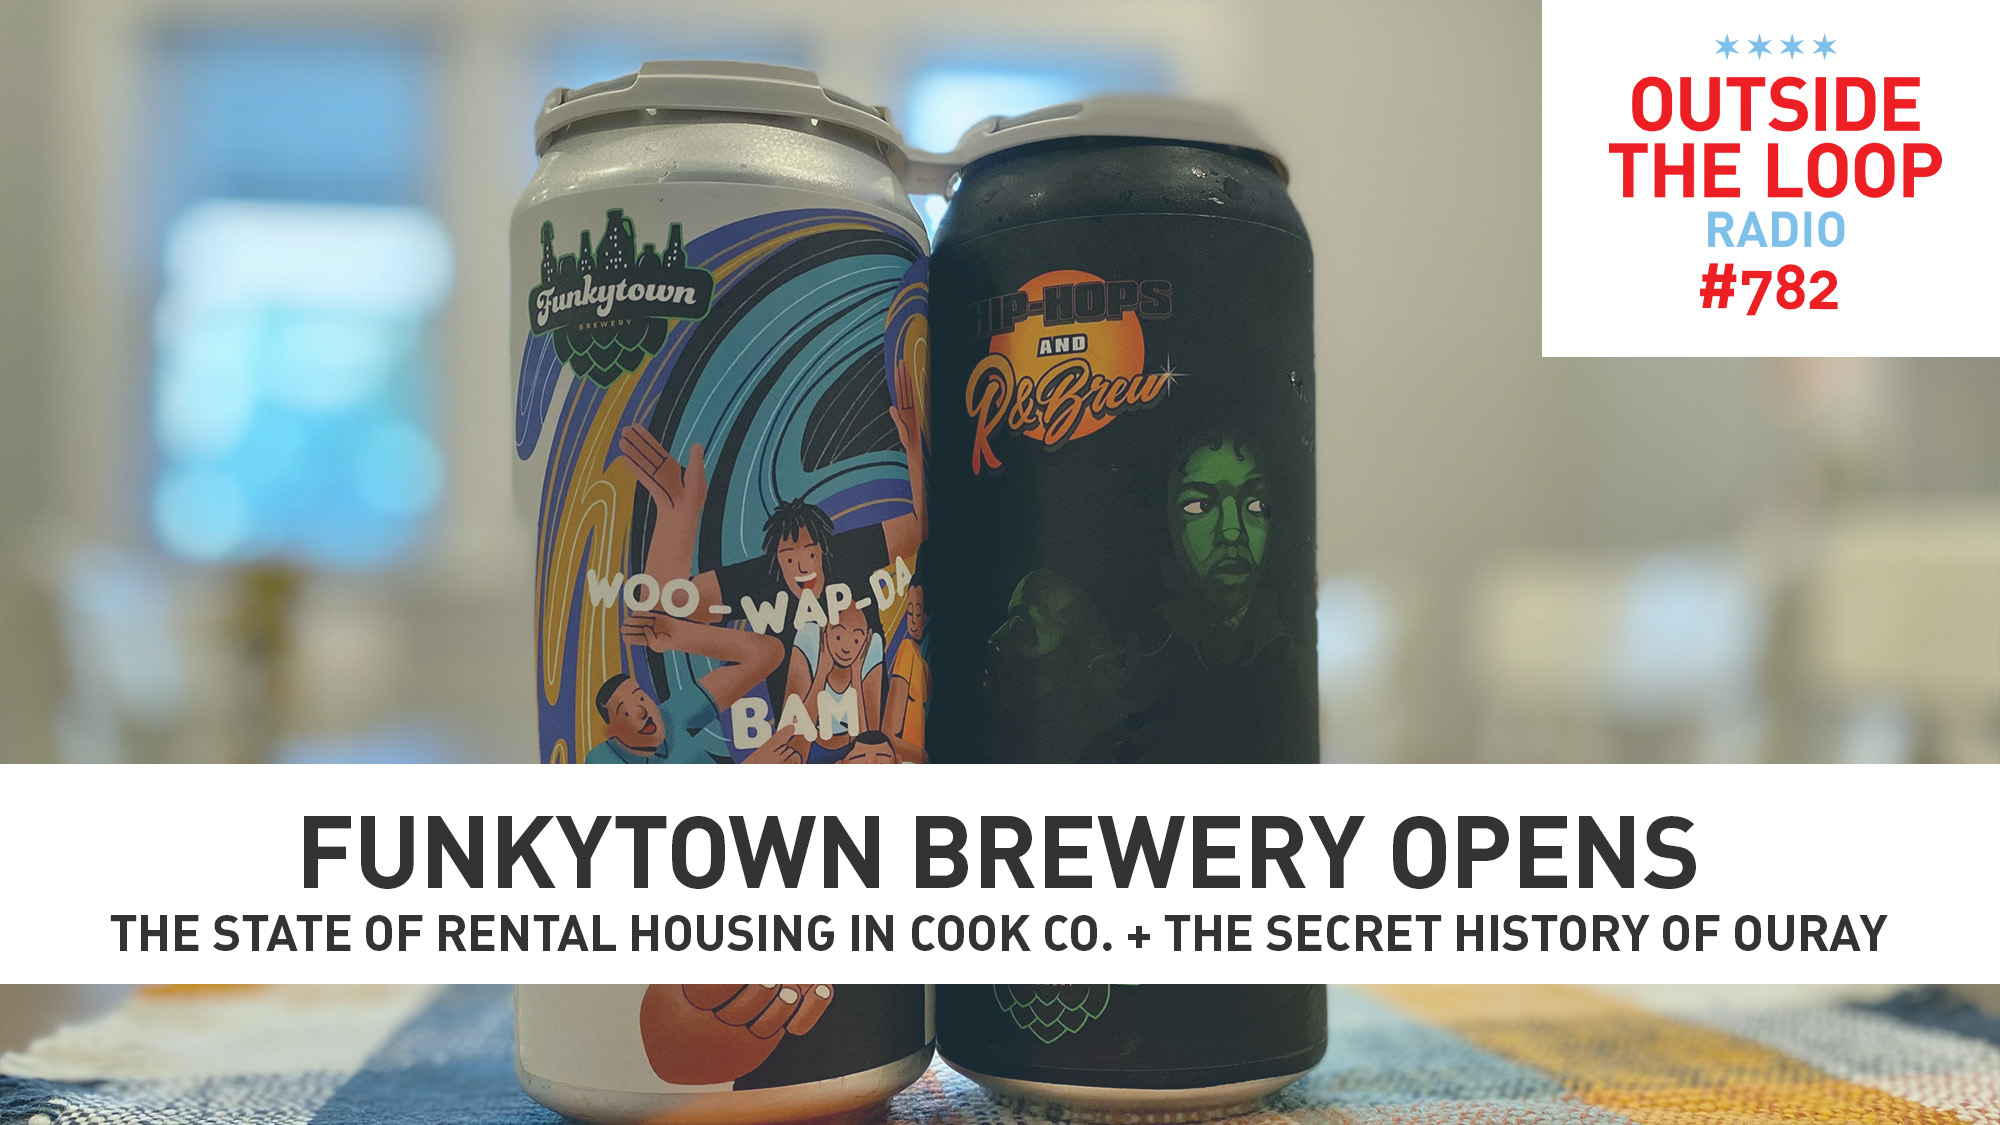 Funkytown Brewery gets funky in Chicago. (Photo credit: Mike Stephen/WGN Radio)